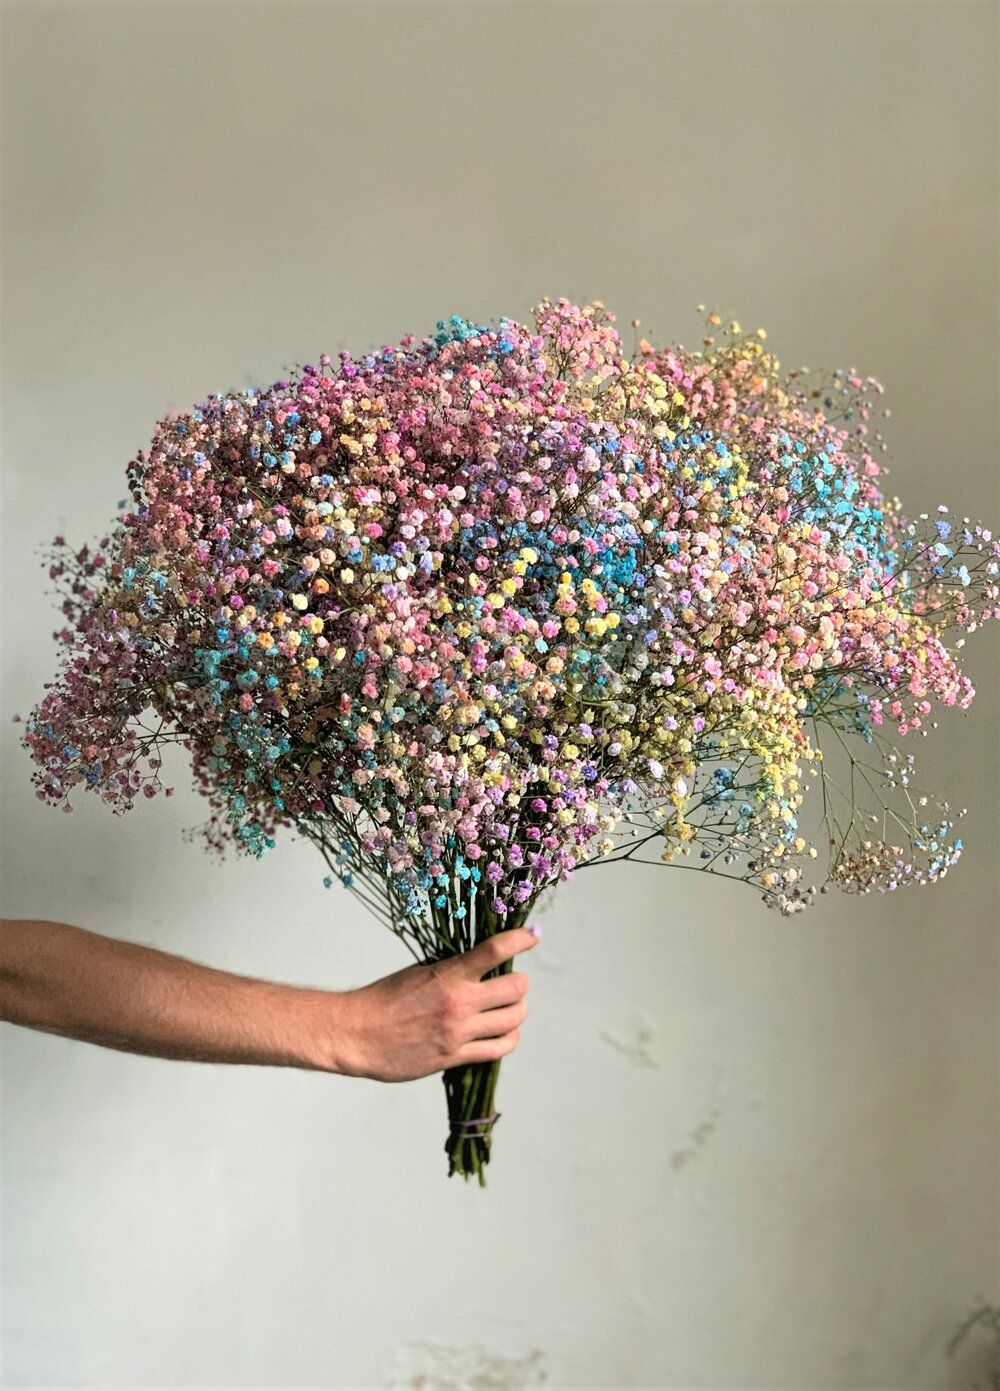 Candyfloss Brudeslor Stalks Roots In 2020 Dried Flowers Flowers Bouquet Gift Pretty Flowers